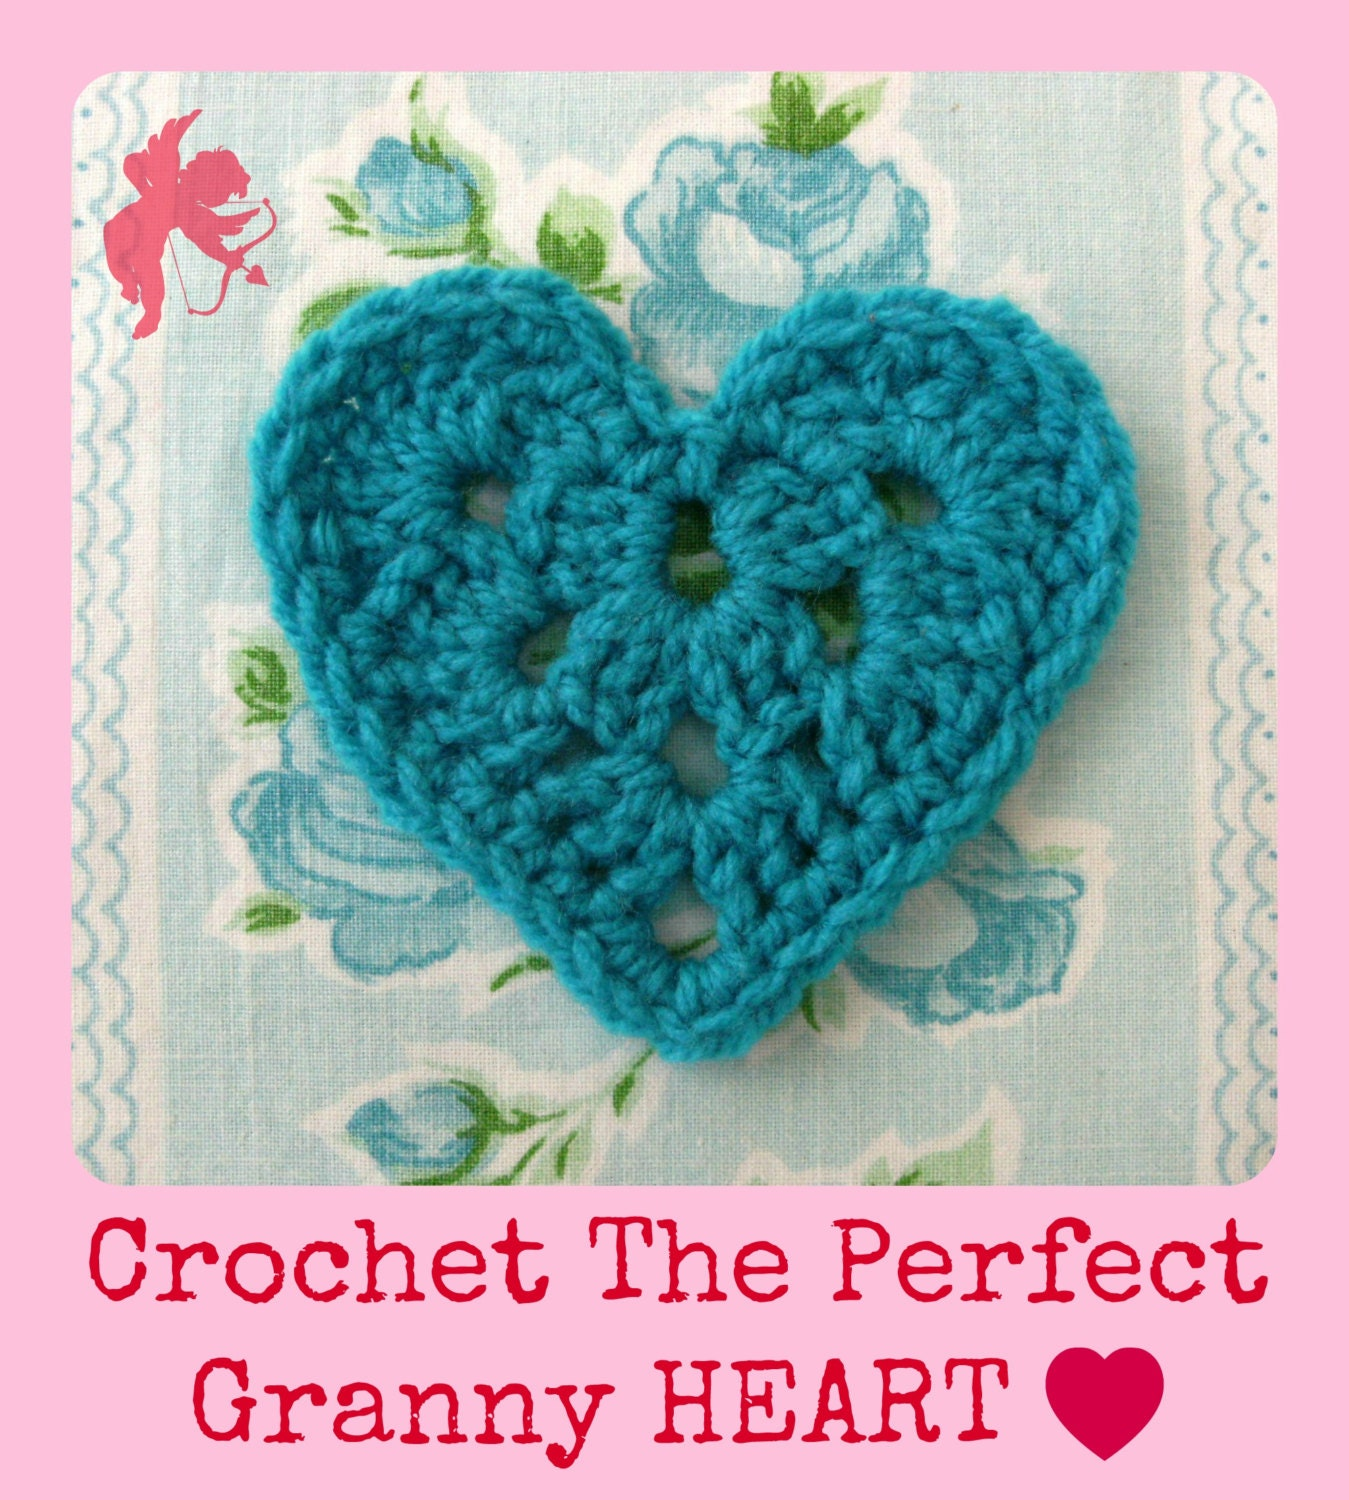 Free Crochet Granny Heart Pattern : Granny Heart & Heart Garland Crochet pattern tutorial Right